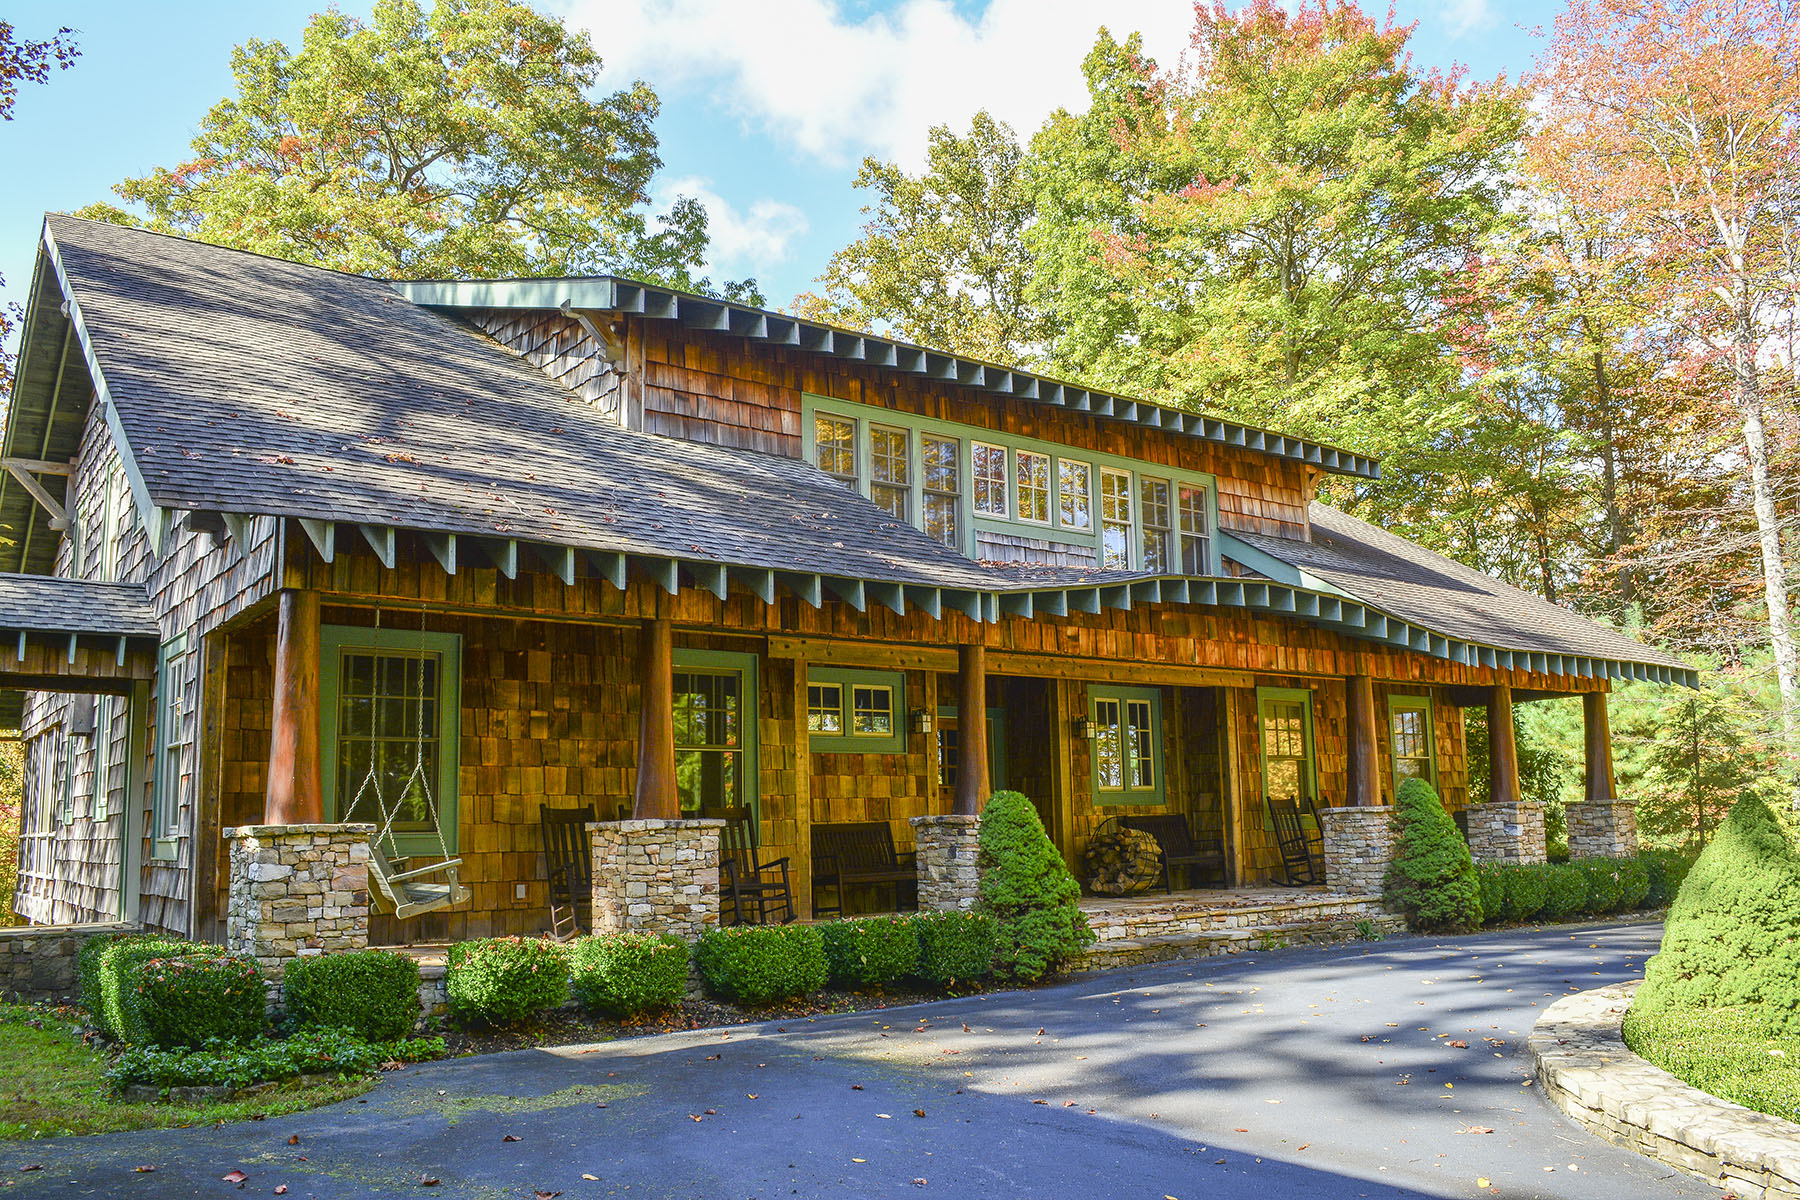 Single Family Homes for Active at BOONE - TWIN RIVERS 257 Tioga Dr Boone, North Carolina 28607 United States